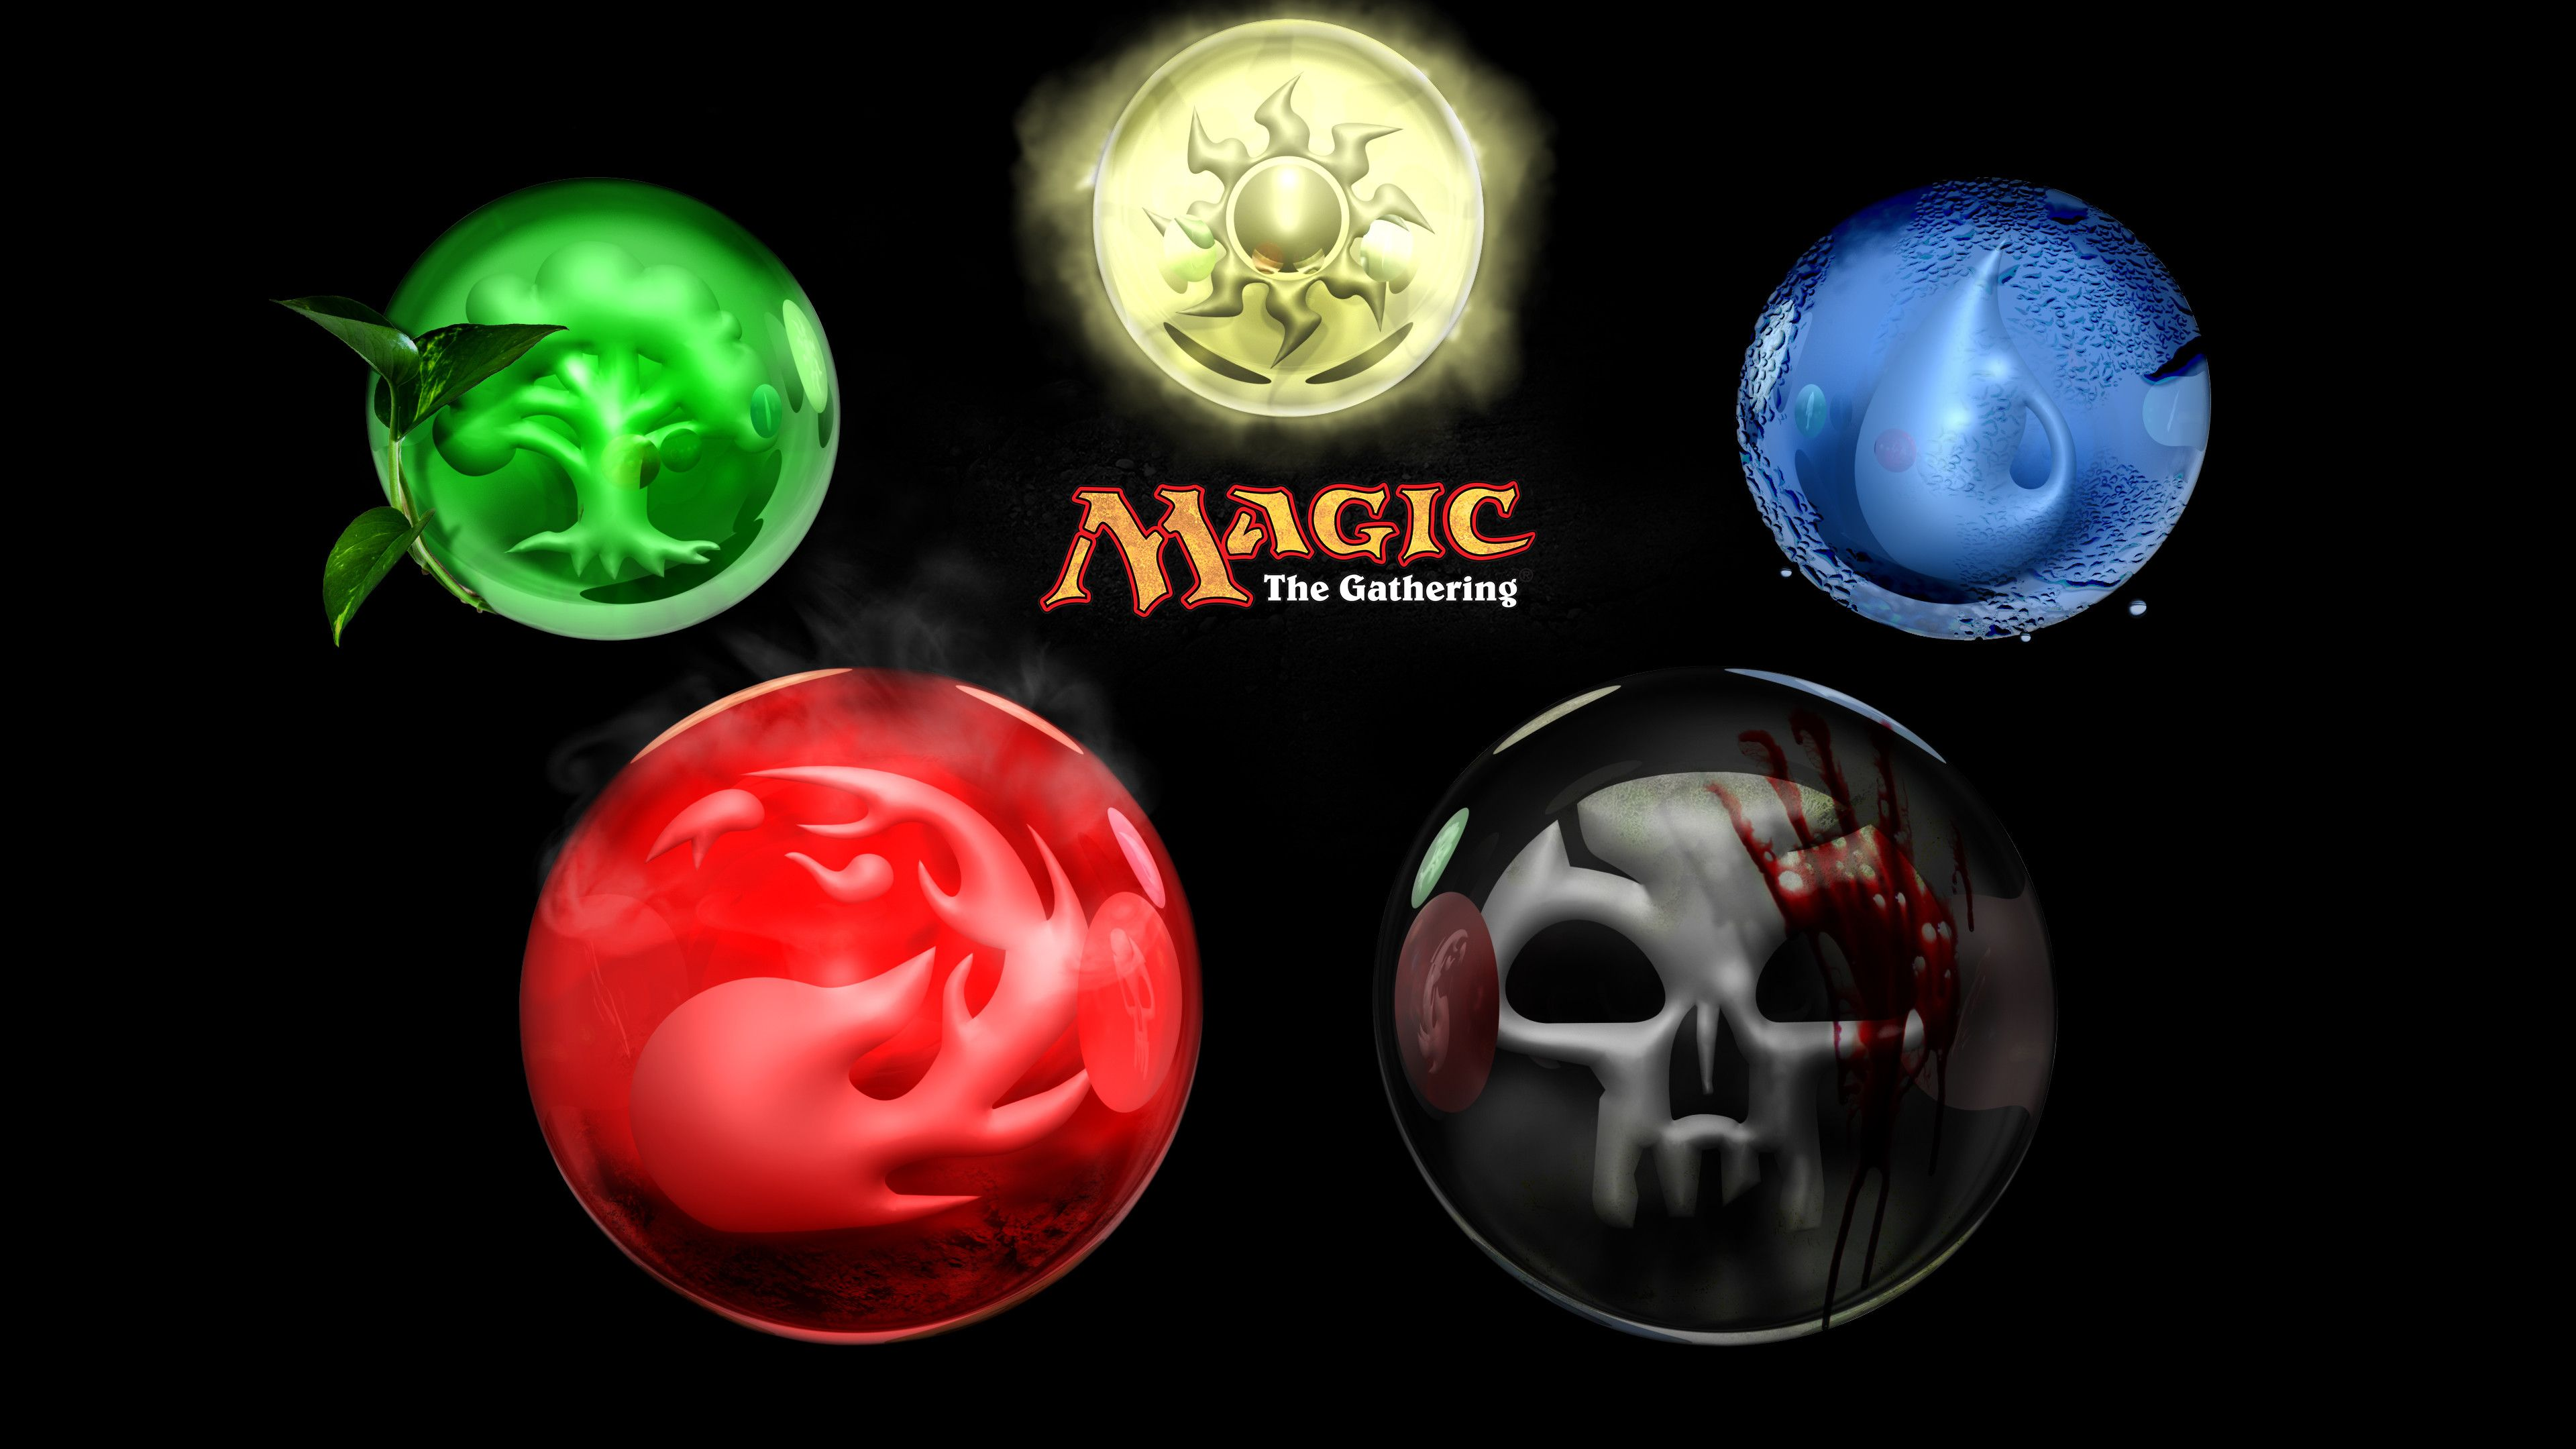 3840x2160 Game Magic The Gathering Colors 3d Element Game